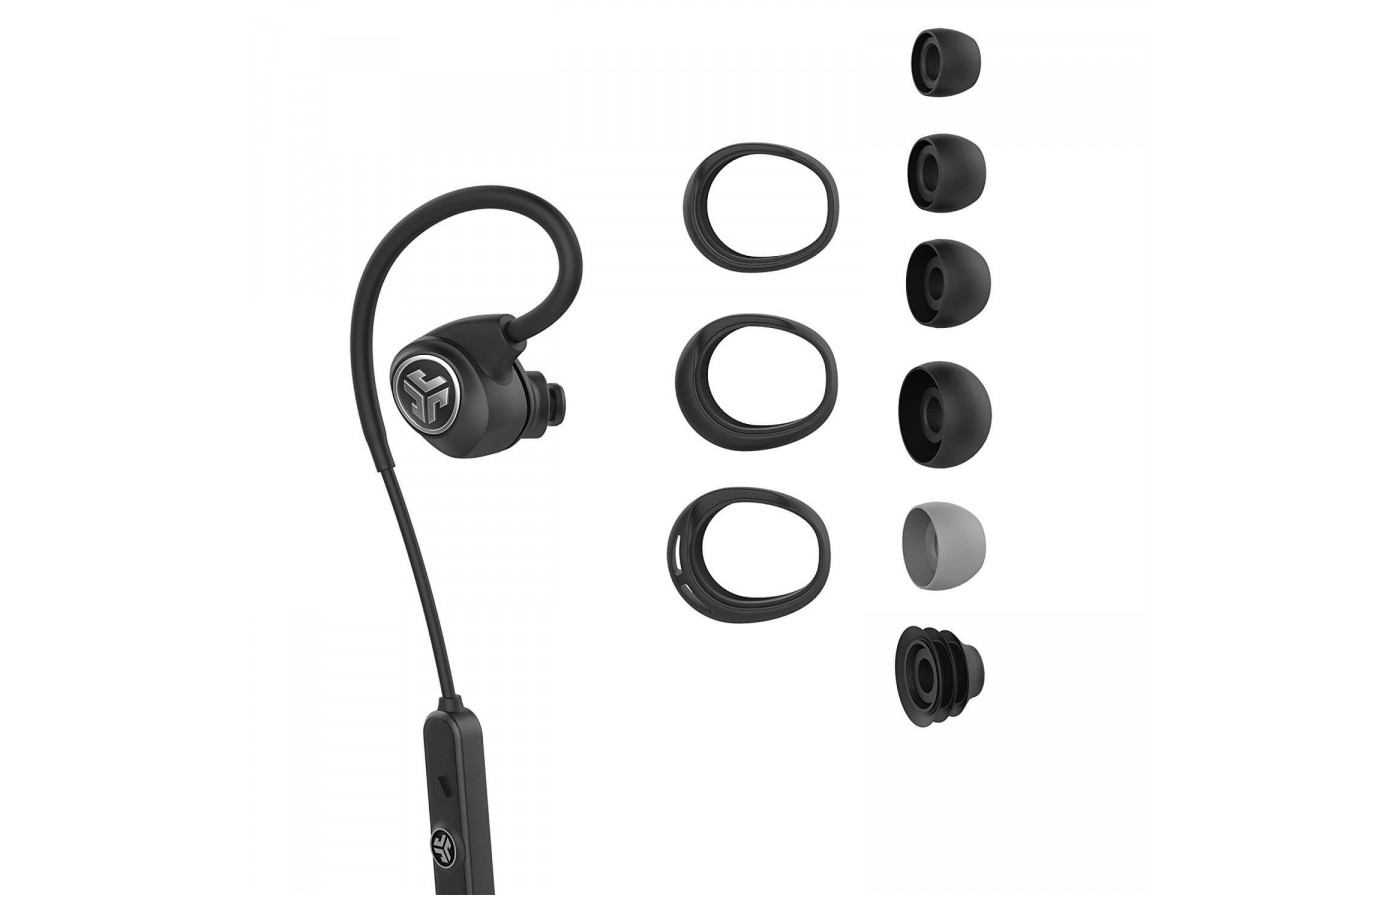 The JLab Epic Sport headphones have 8mm drivers